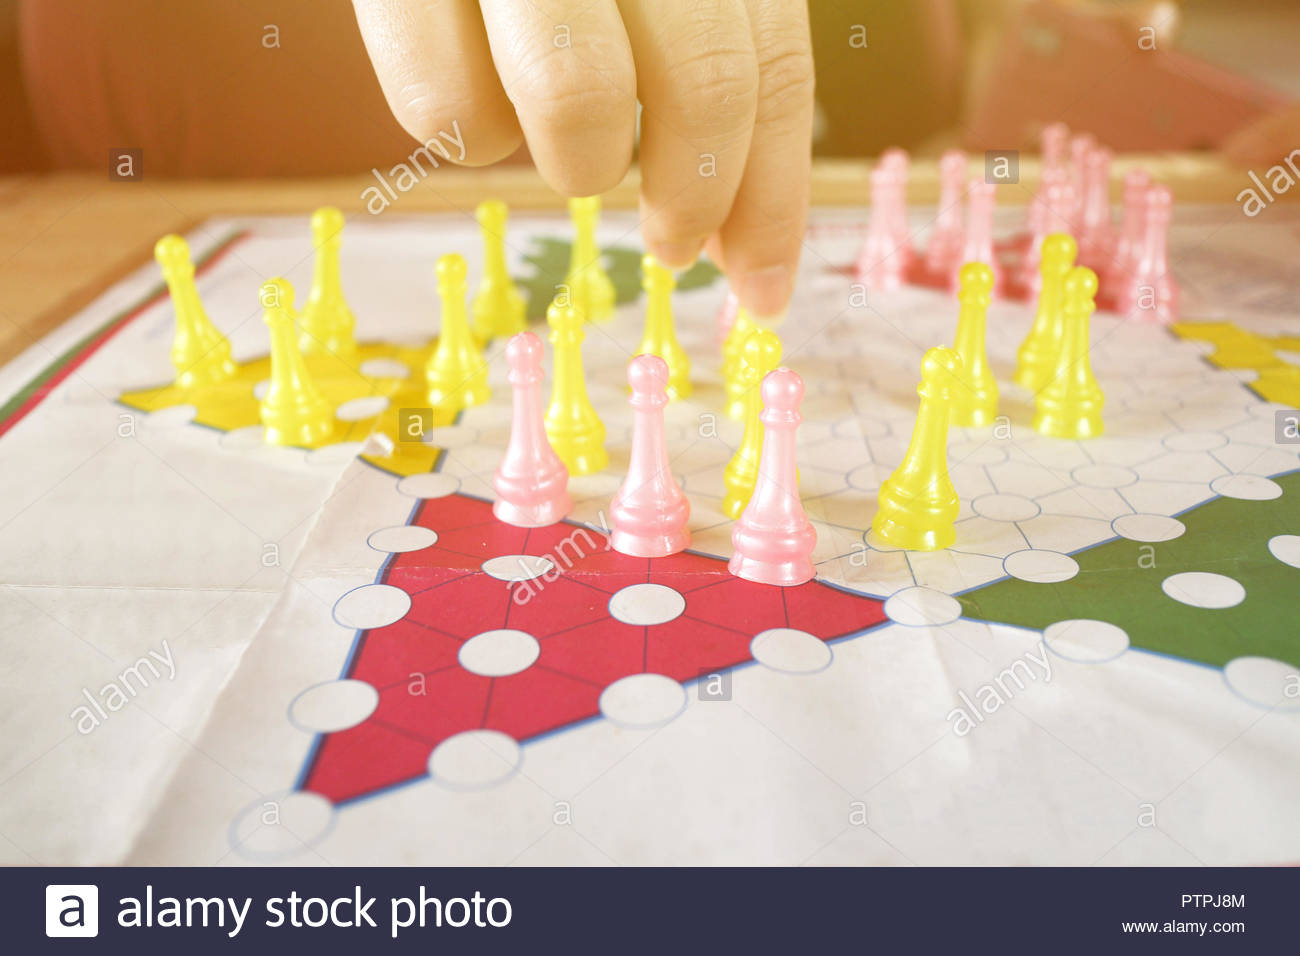 People playing chinese checkers. Stock Photo